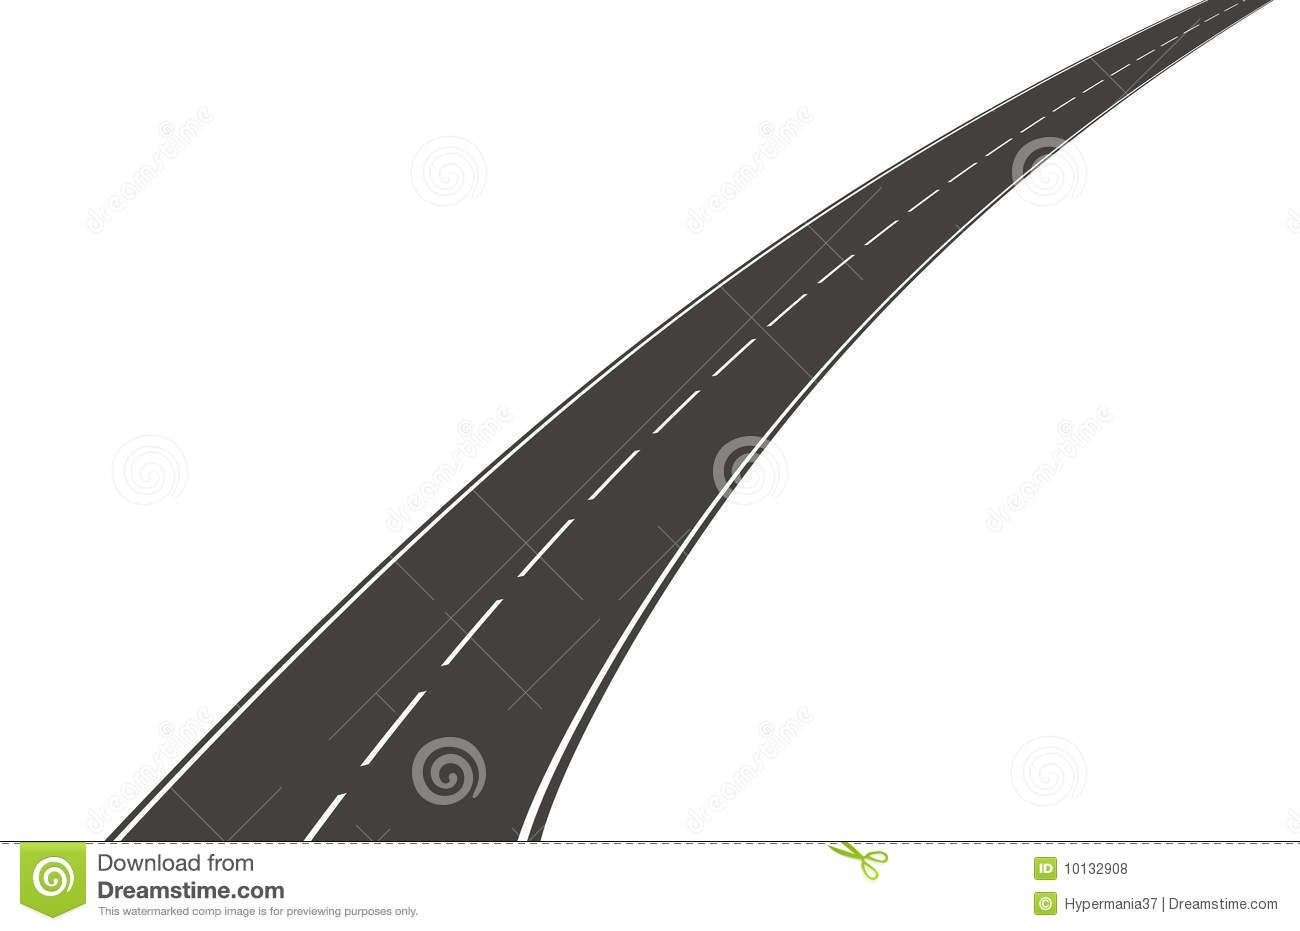 Curved road clipart png banner download City Curved Road Clipart - Clipart Kid banner download